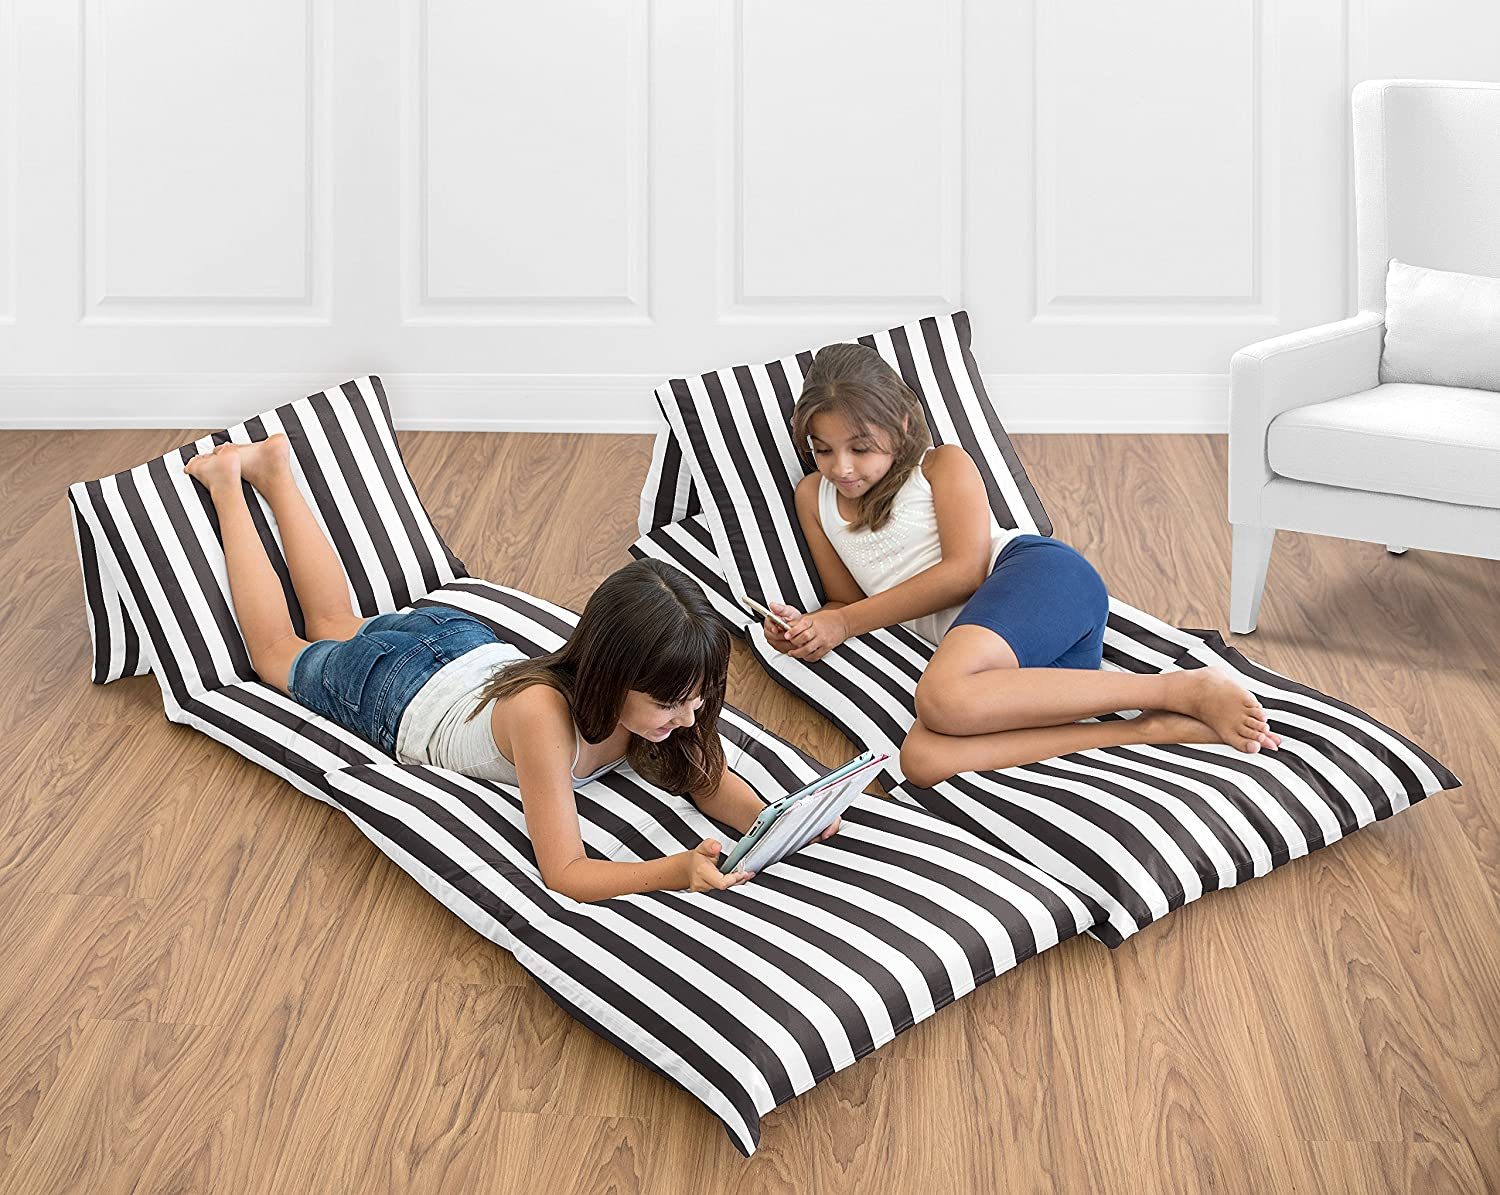 Sweet Jojo Designs Black and White Stripe Kids Teen Floor Pillow Case Lounger Cushion Cover for Paris Collection (Pillows Not Included)